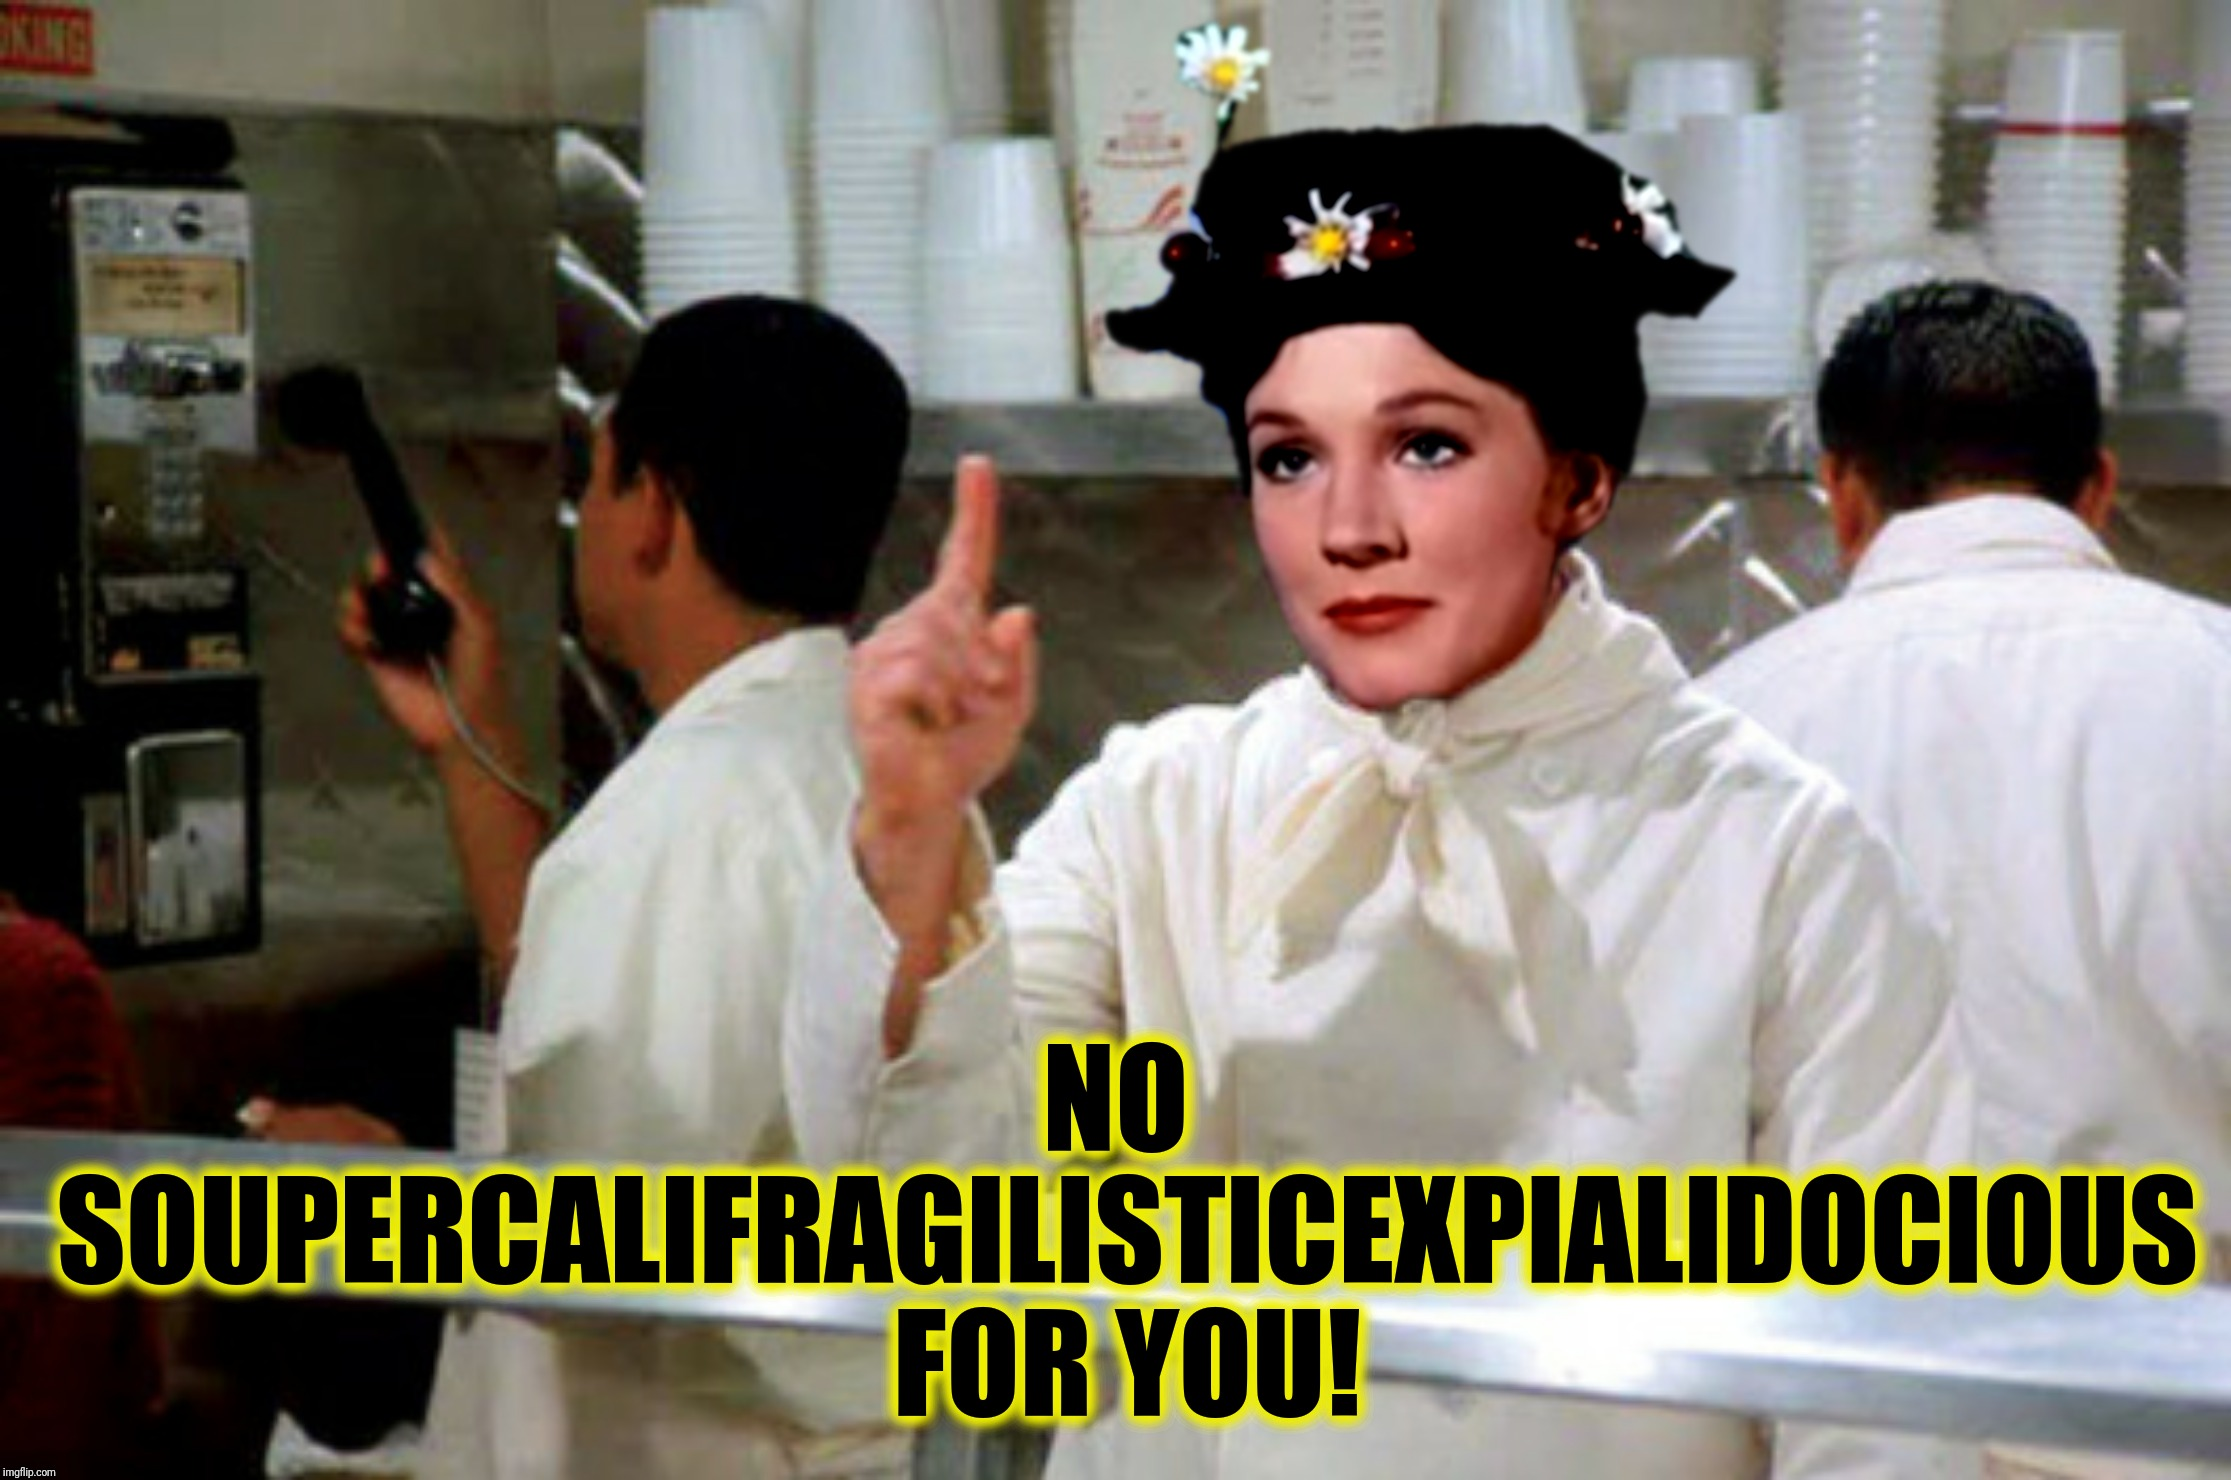 Bad Photoshop Sunday presents:  A spoonful of sugar helps the insulin go down   | NO SOUPERCALIFRAGILISTICEXPIALIDOCIOUS FOR YOU! | image tagged in bad photoshop sunday,mary poppins,soup nazi,no soupercalifragilisticexpialidocius for you | made w/ Imgflip meme maker